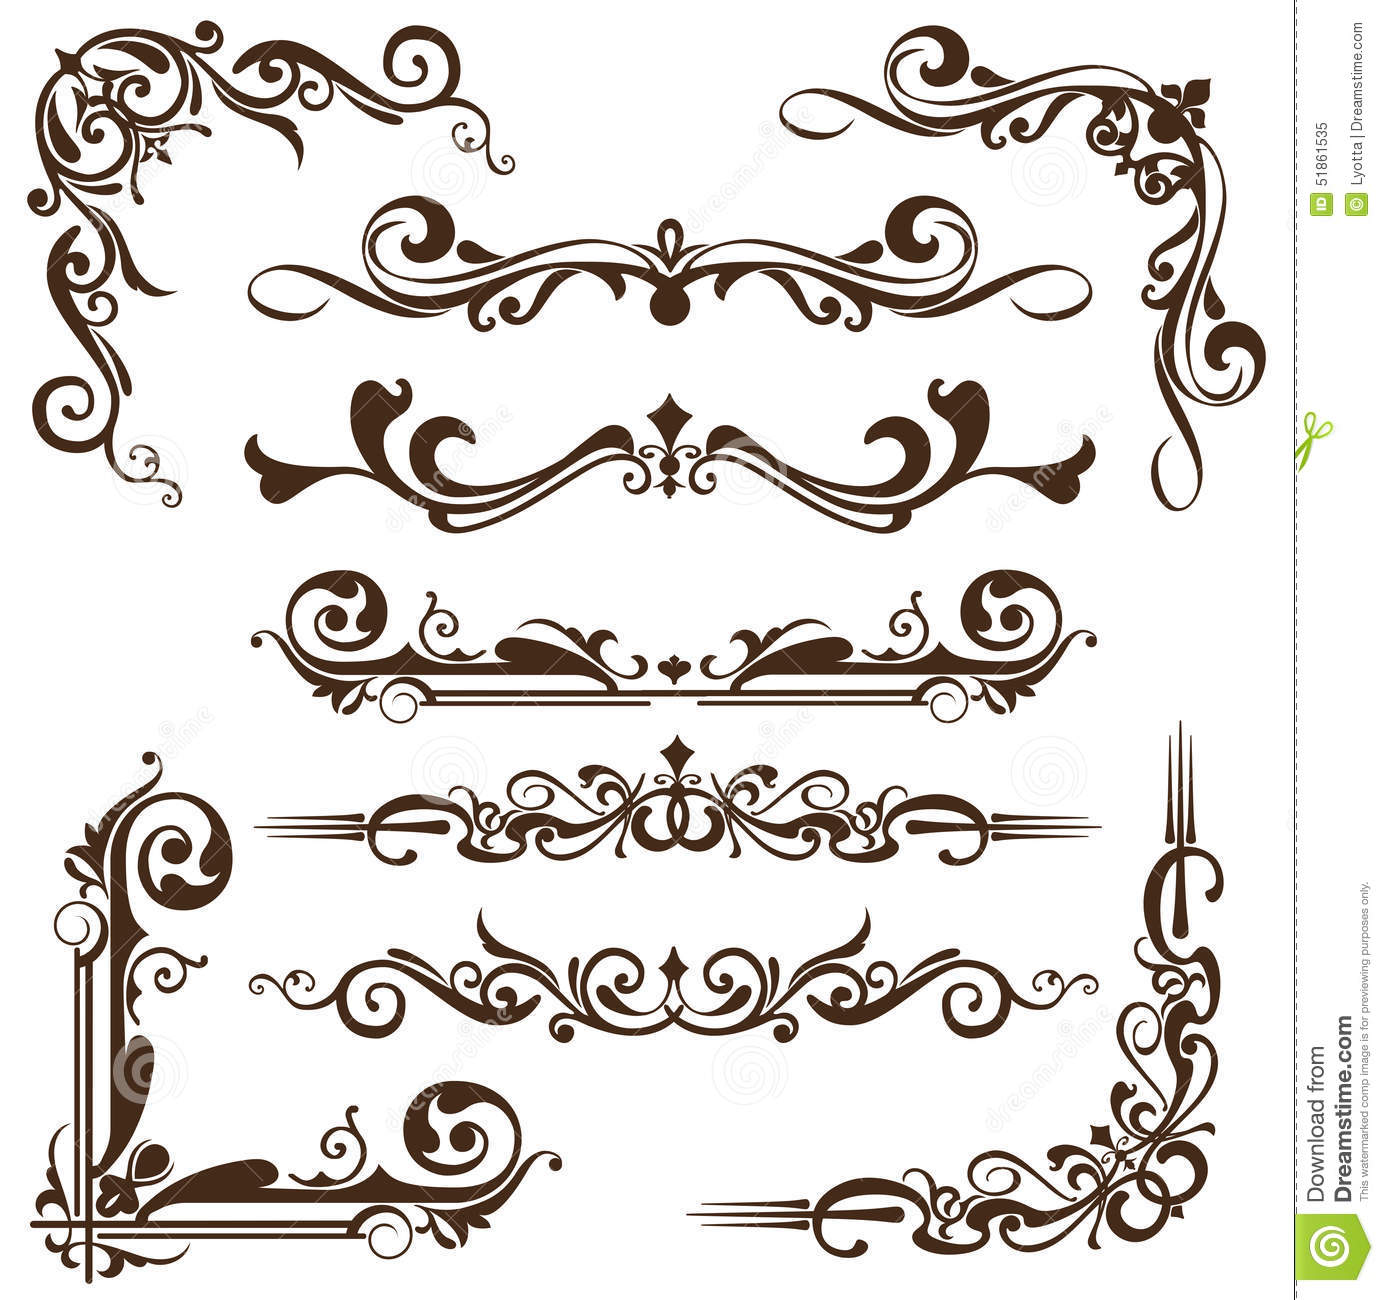 Graphics art nouveau and art on pinterest - Paginas decoracion vintage ...